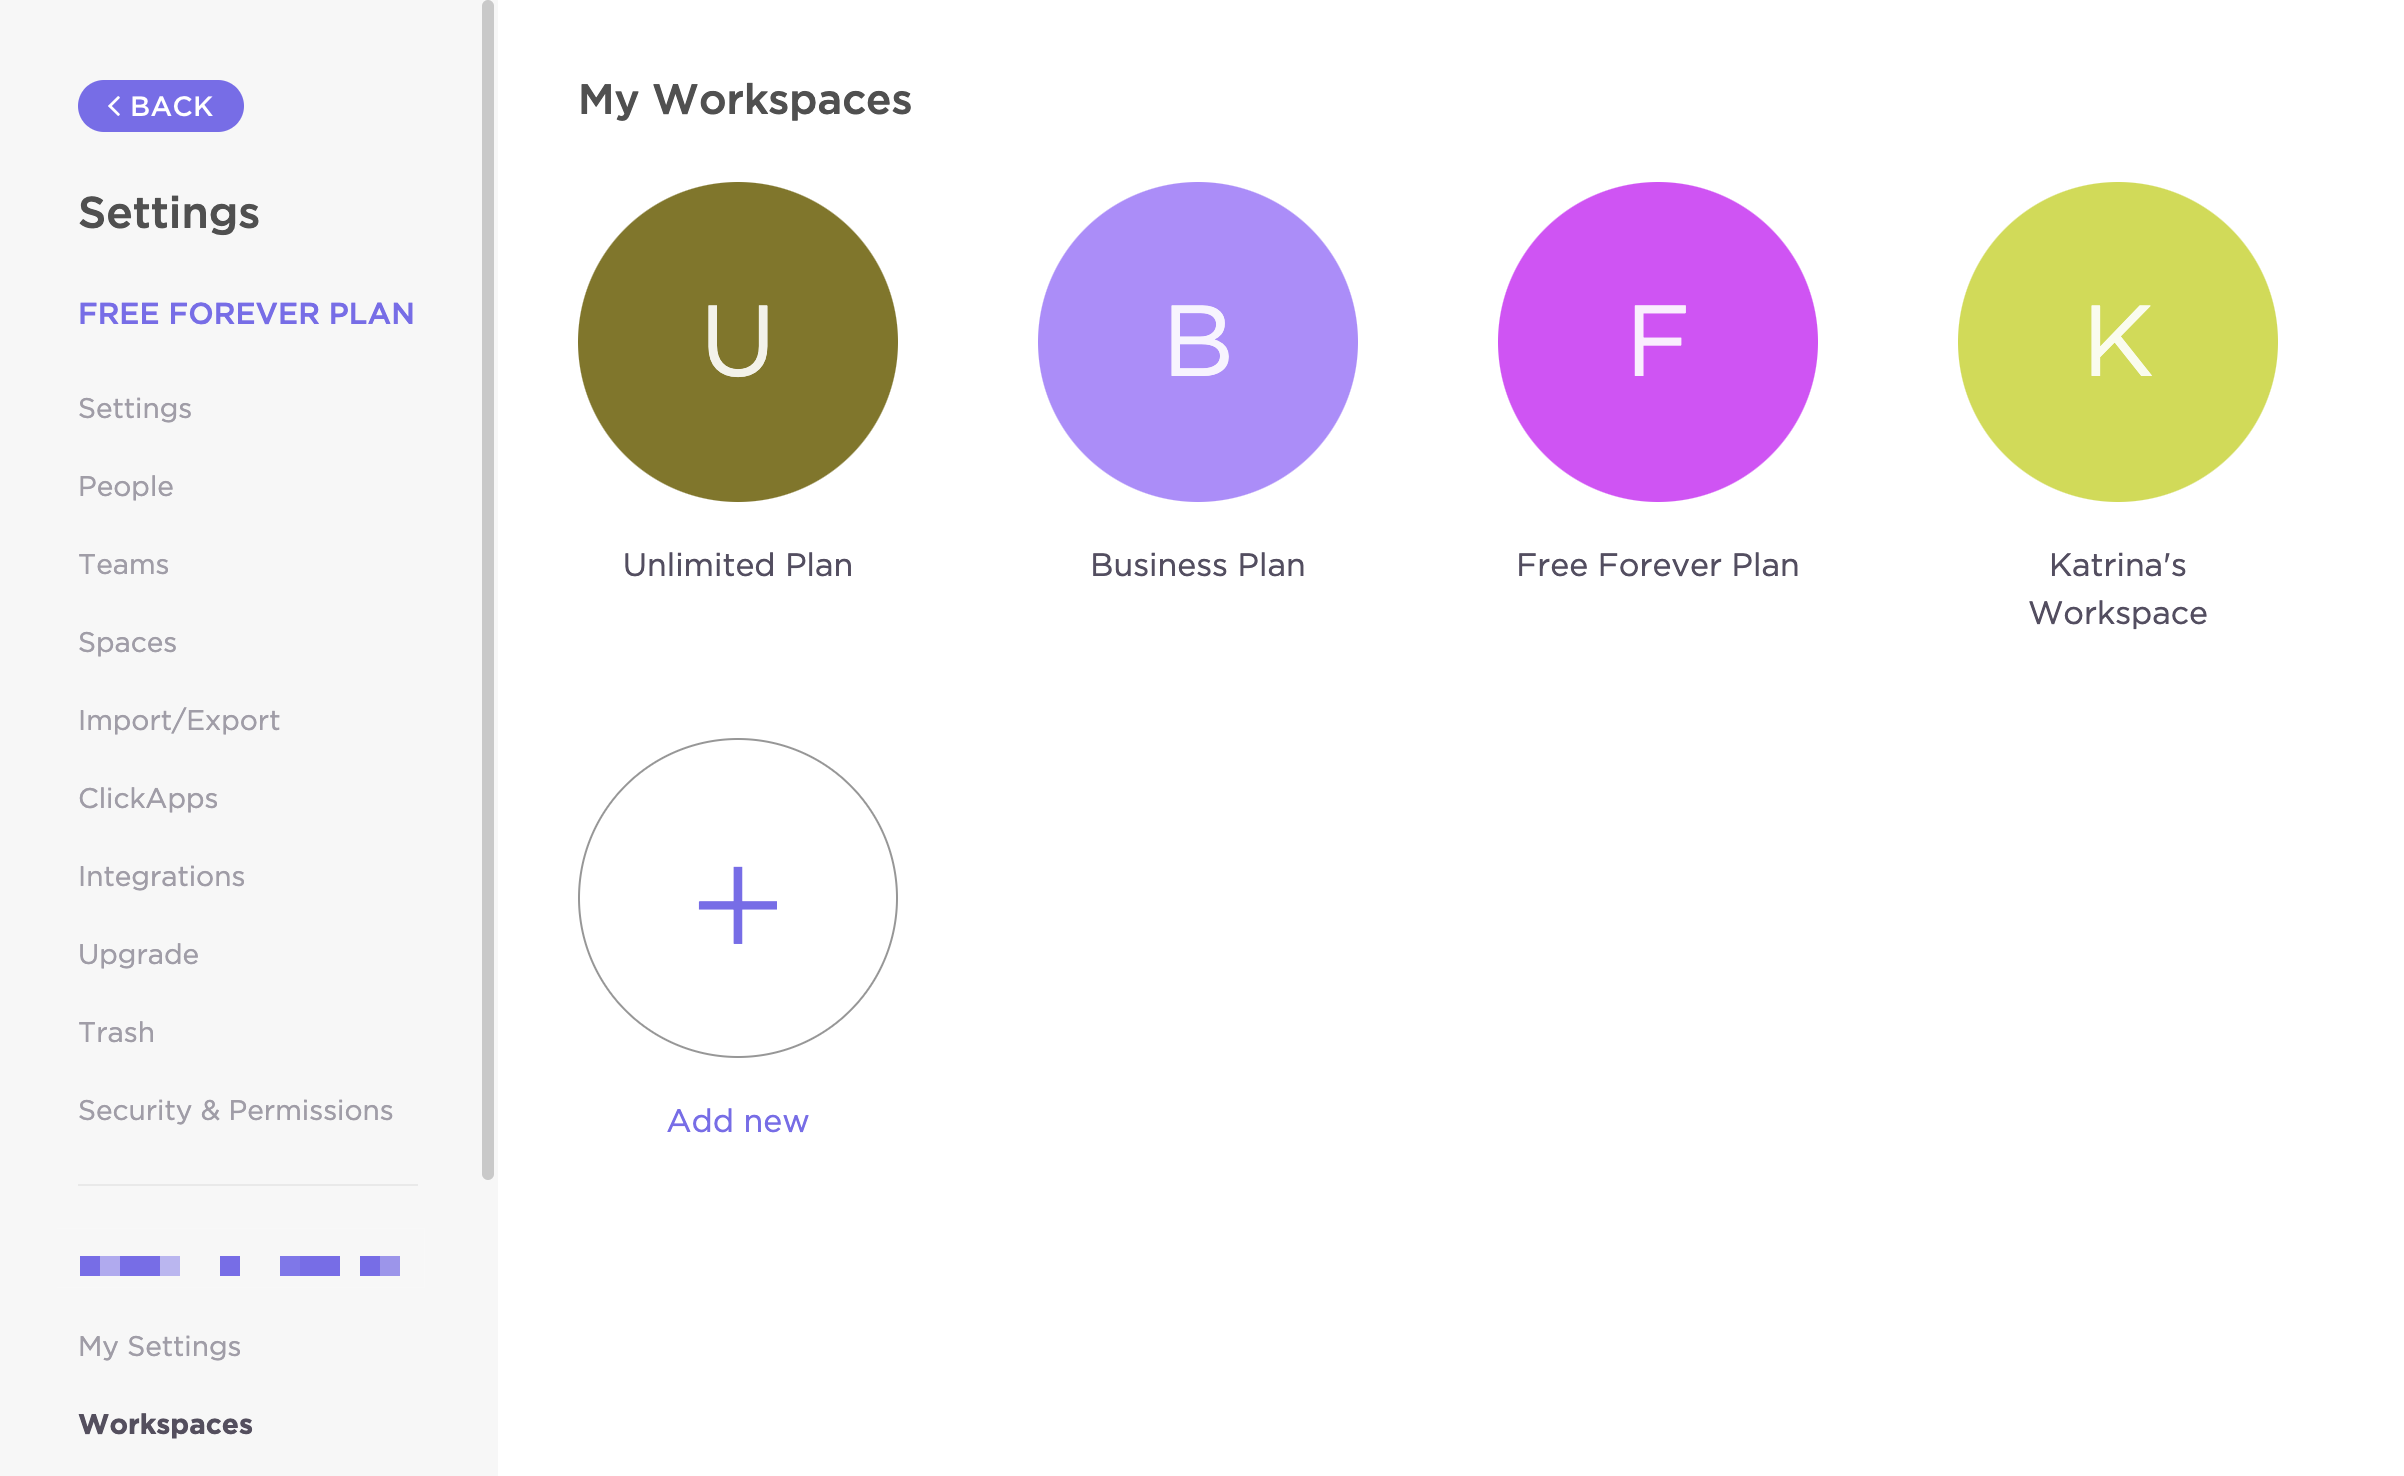 where one can add a new Workspace in Settings